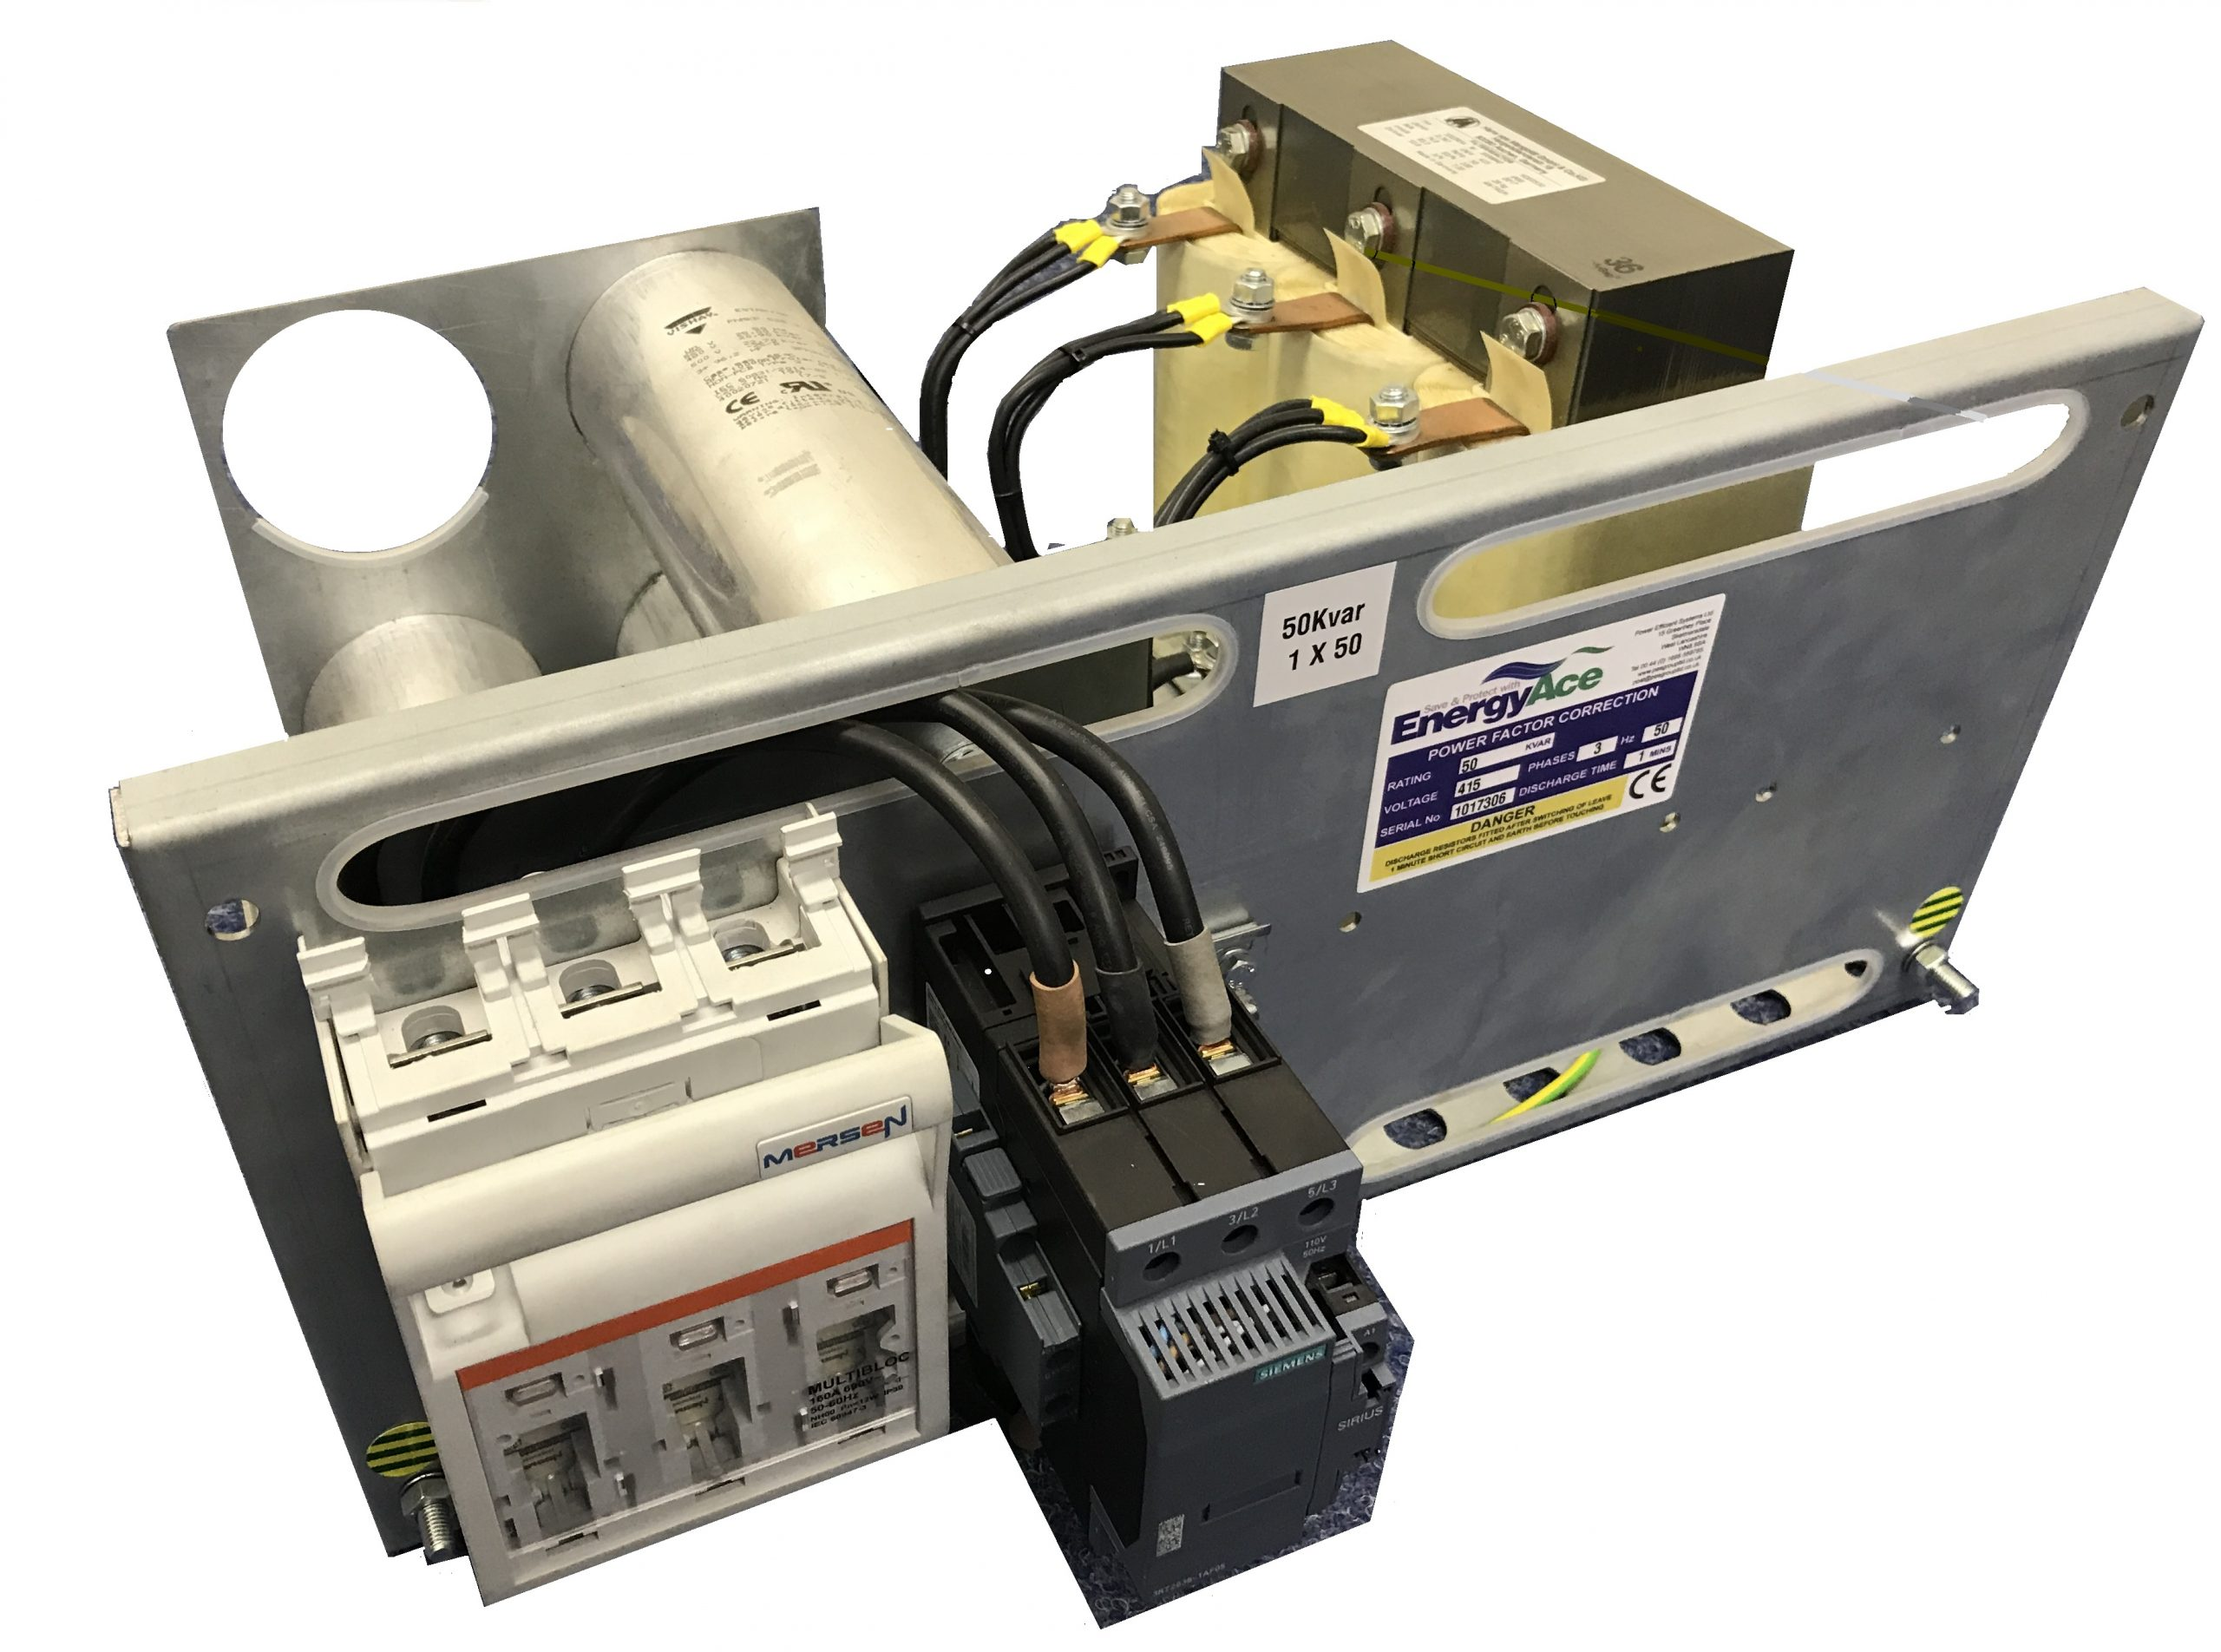 to promote a detuned power factor correction capacitor tray